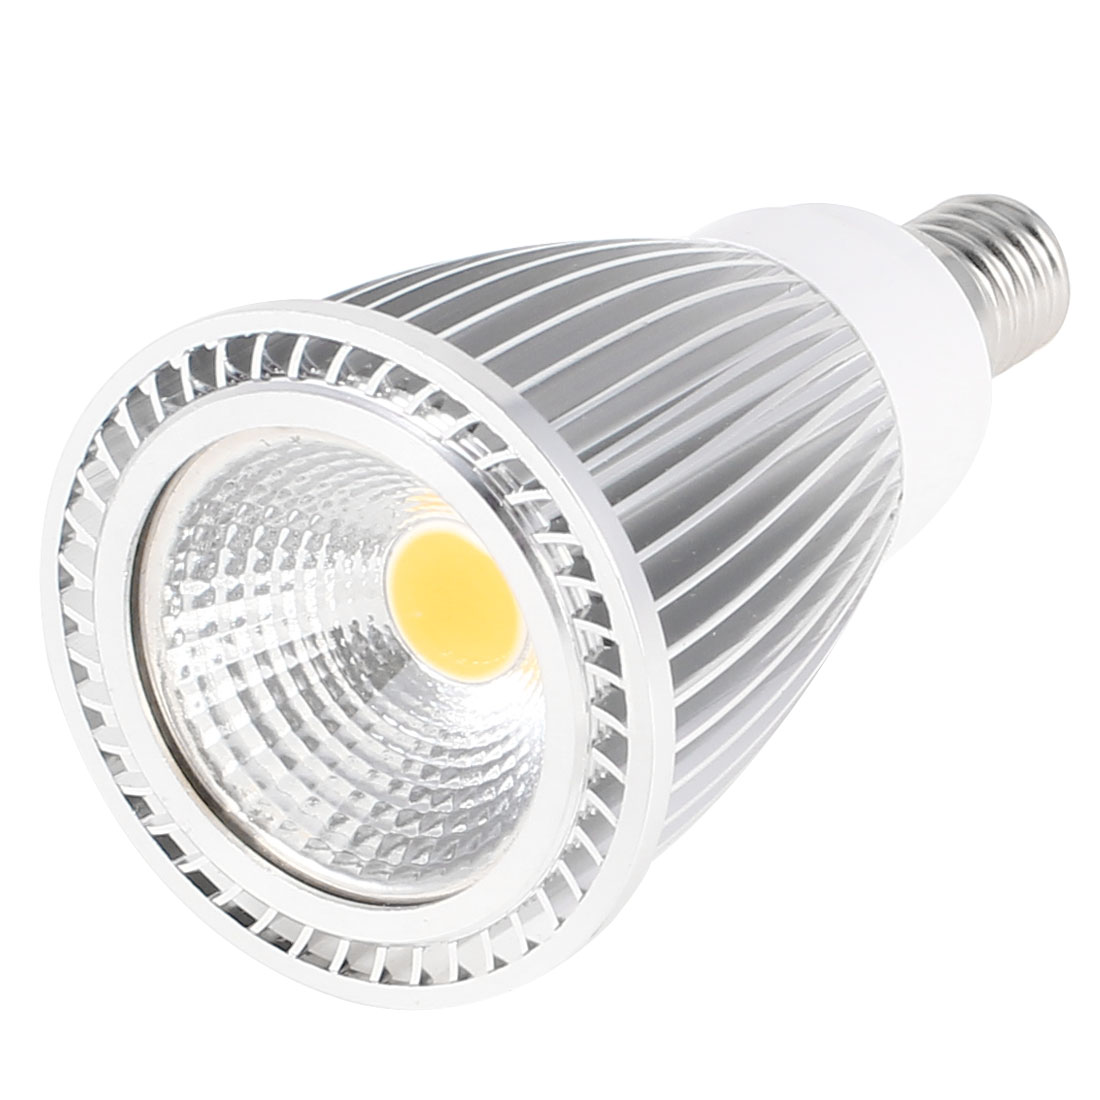 AC 85-265V E14 Base 7W Power Warm White LED Light Ceiling COB Spotlight Lamp Bulb